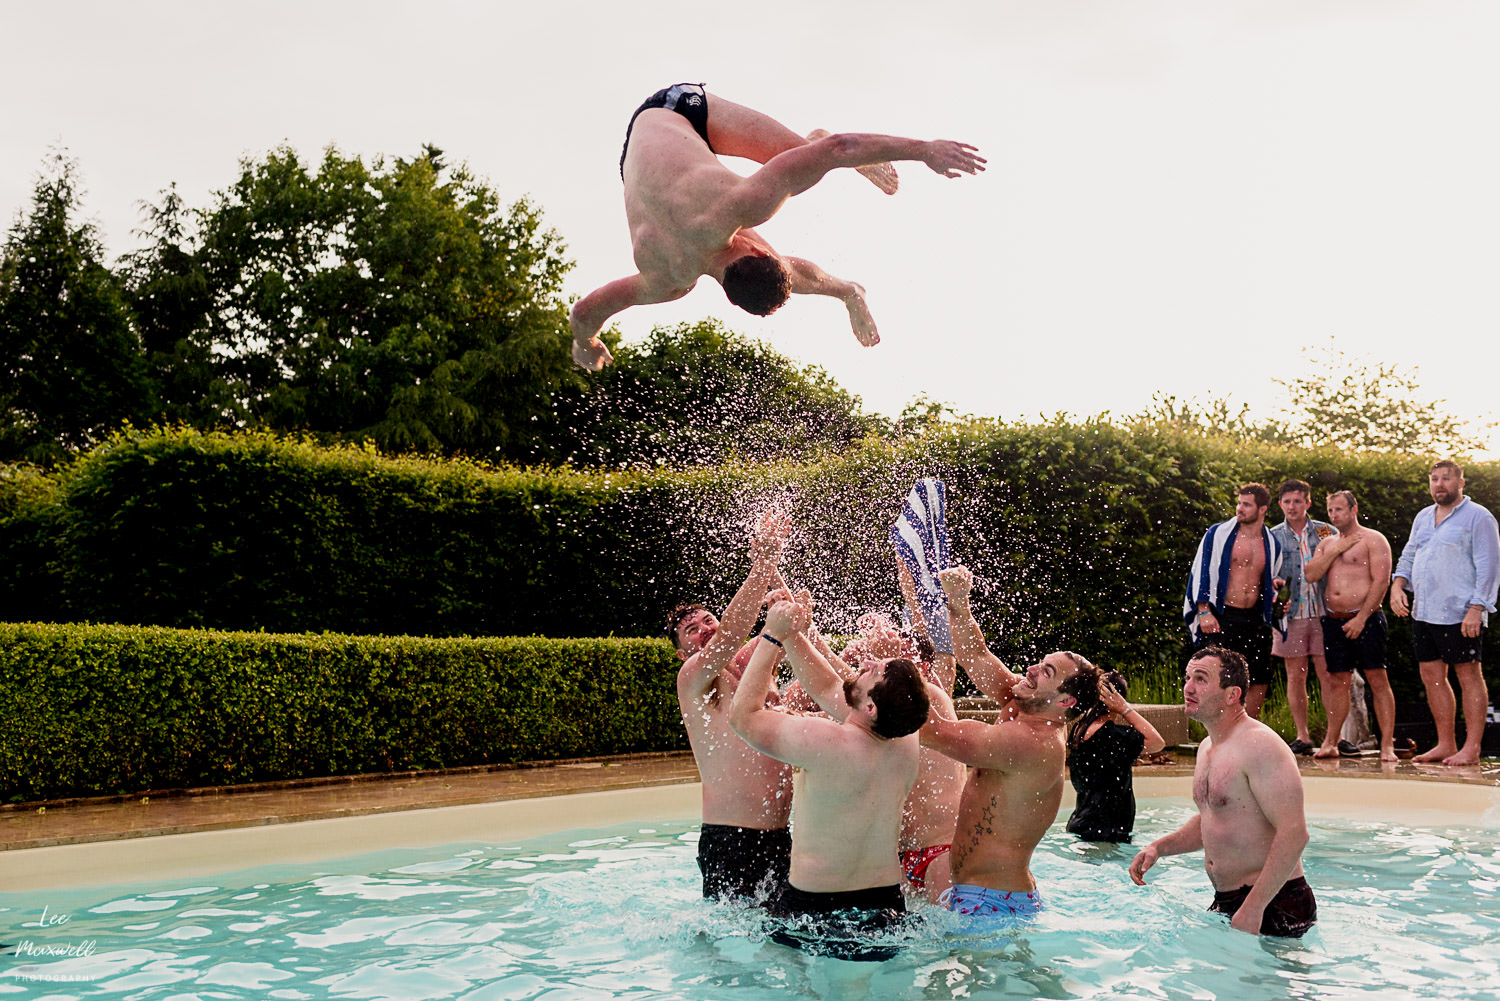 Somersaults in the pool